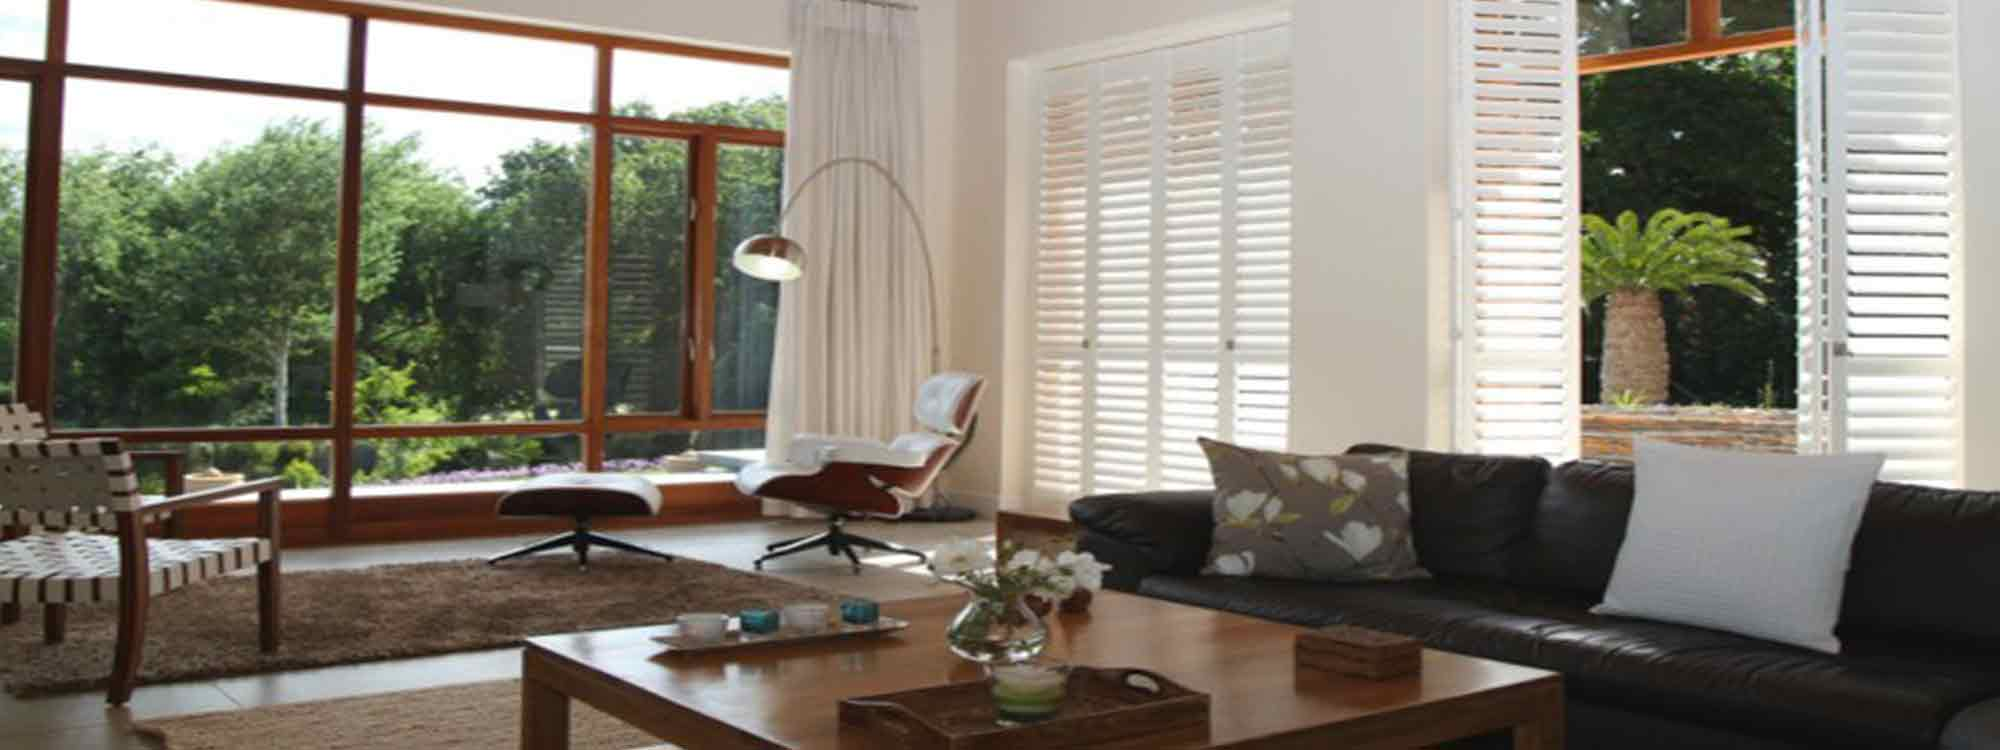 Go for green with eco-friendly shutters